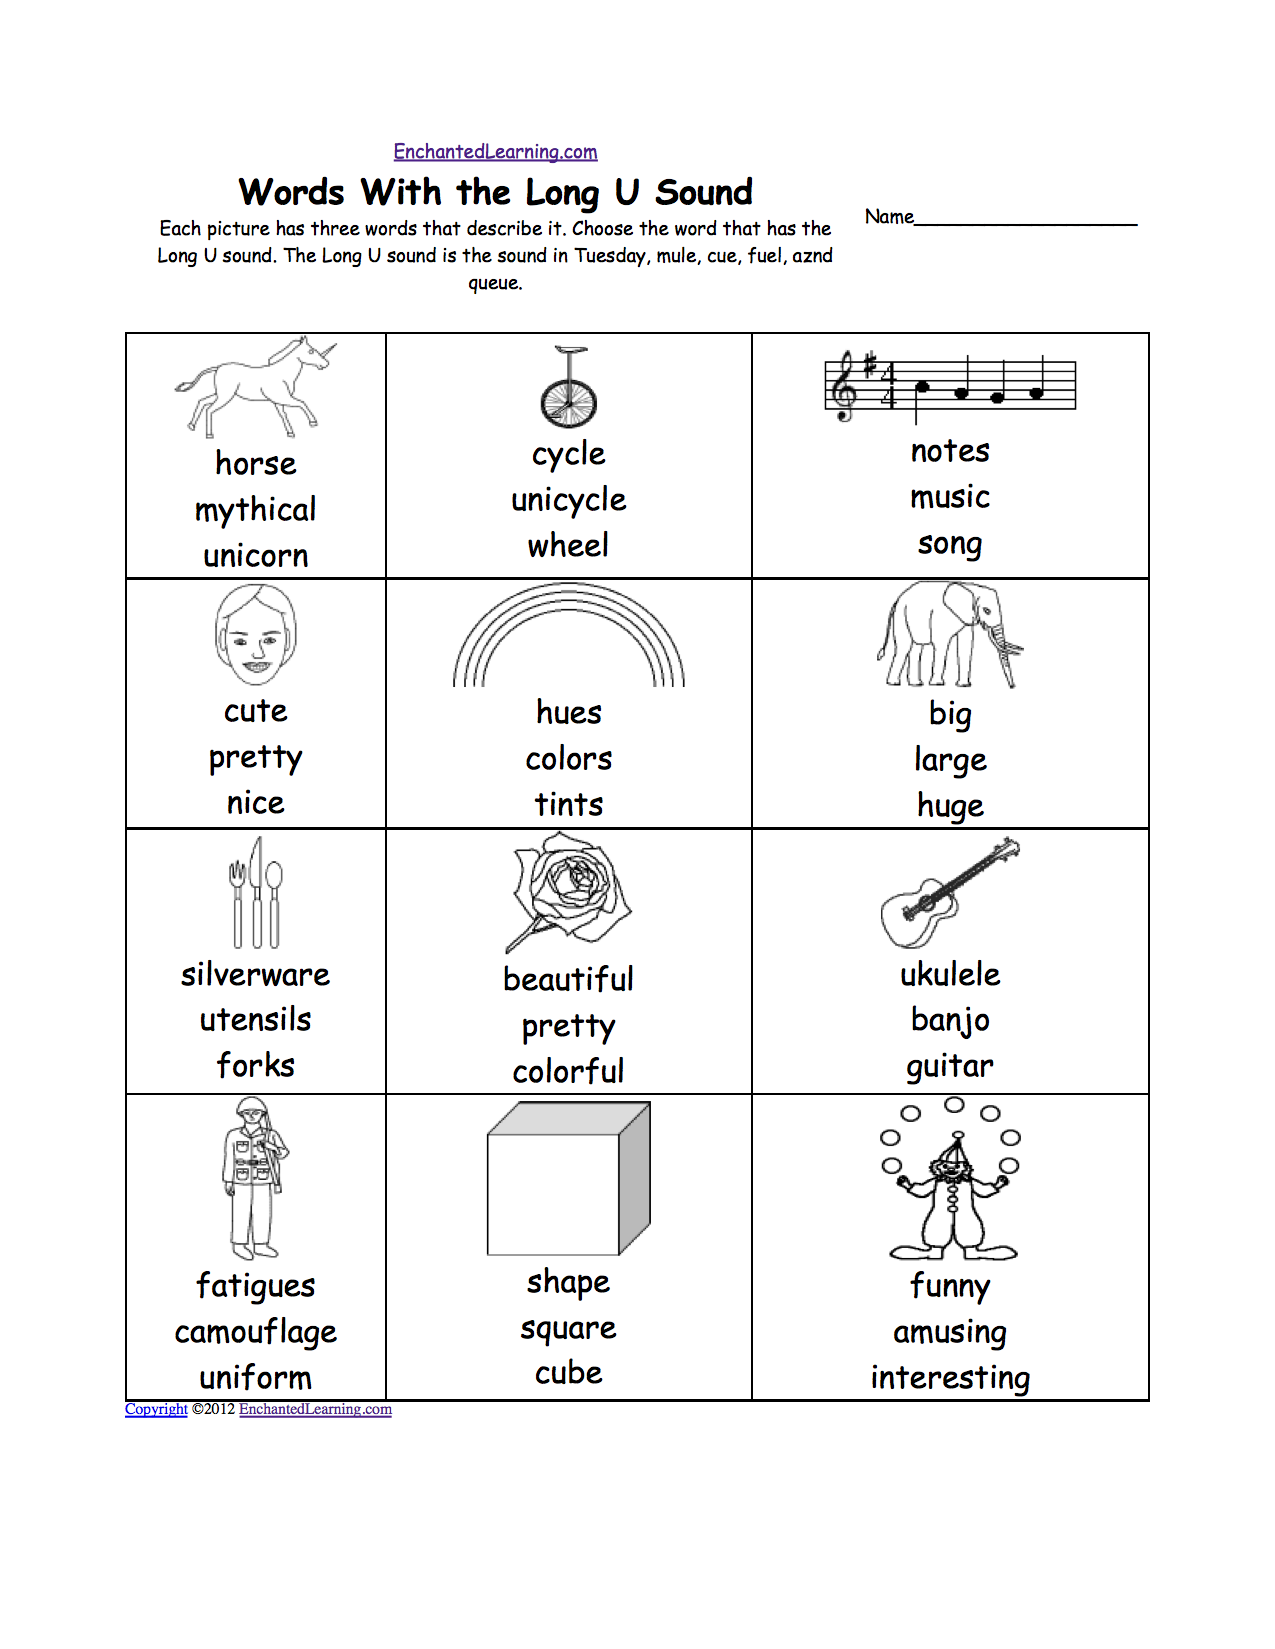 Worksheet Words With Long U Sound long u alphabet activities at enchantedlearning com